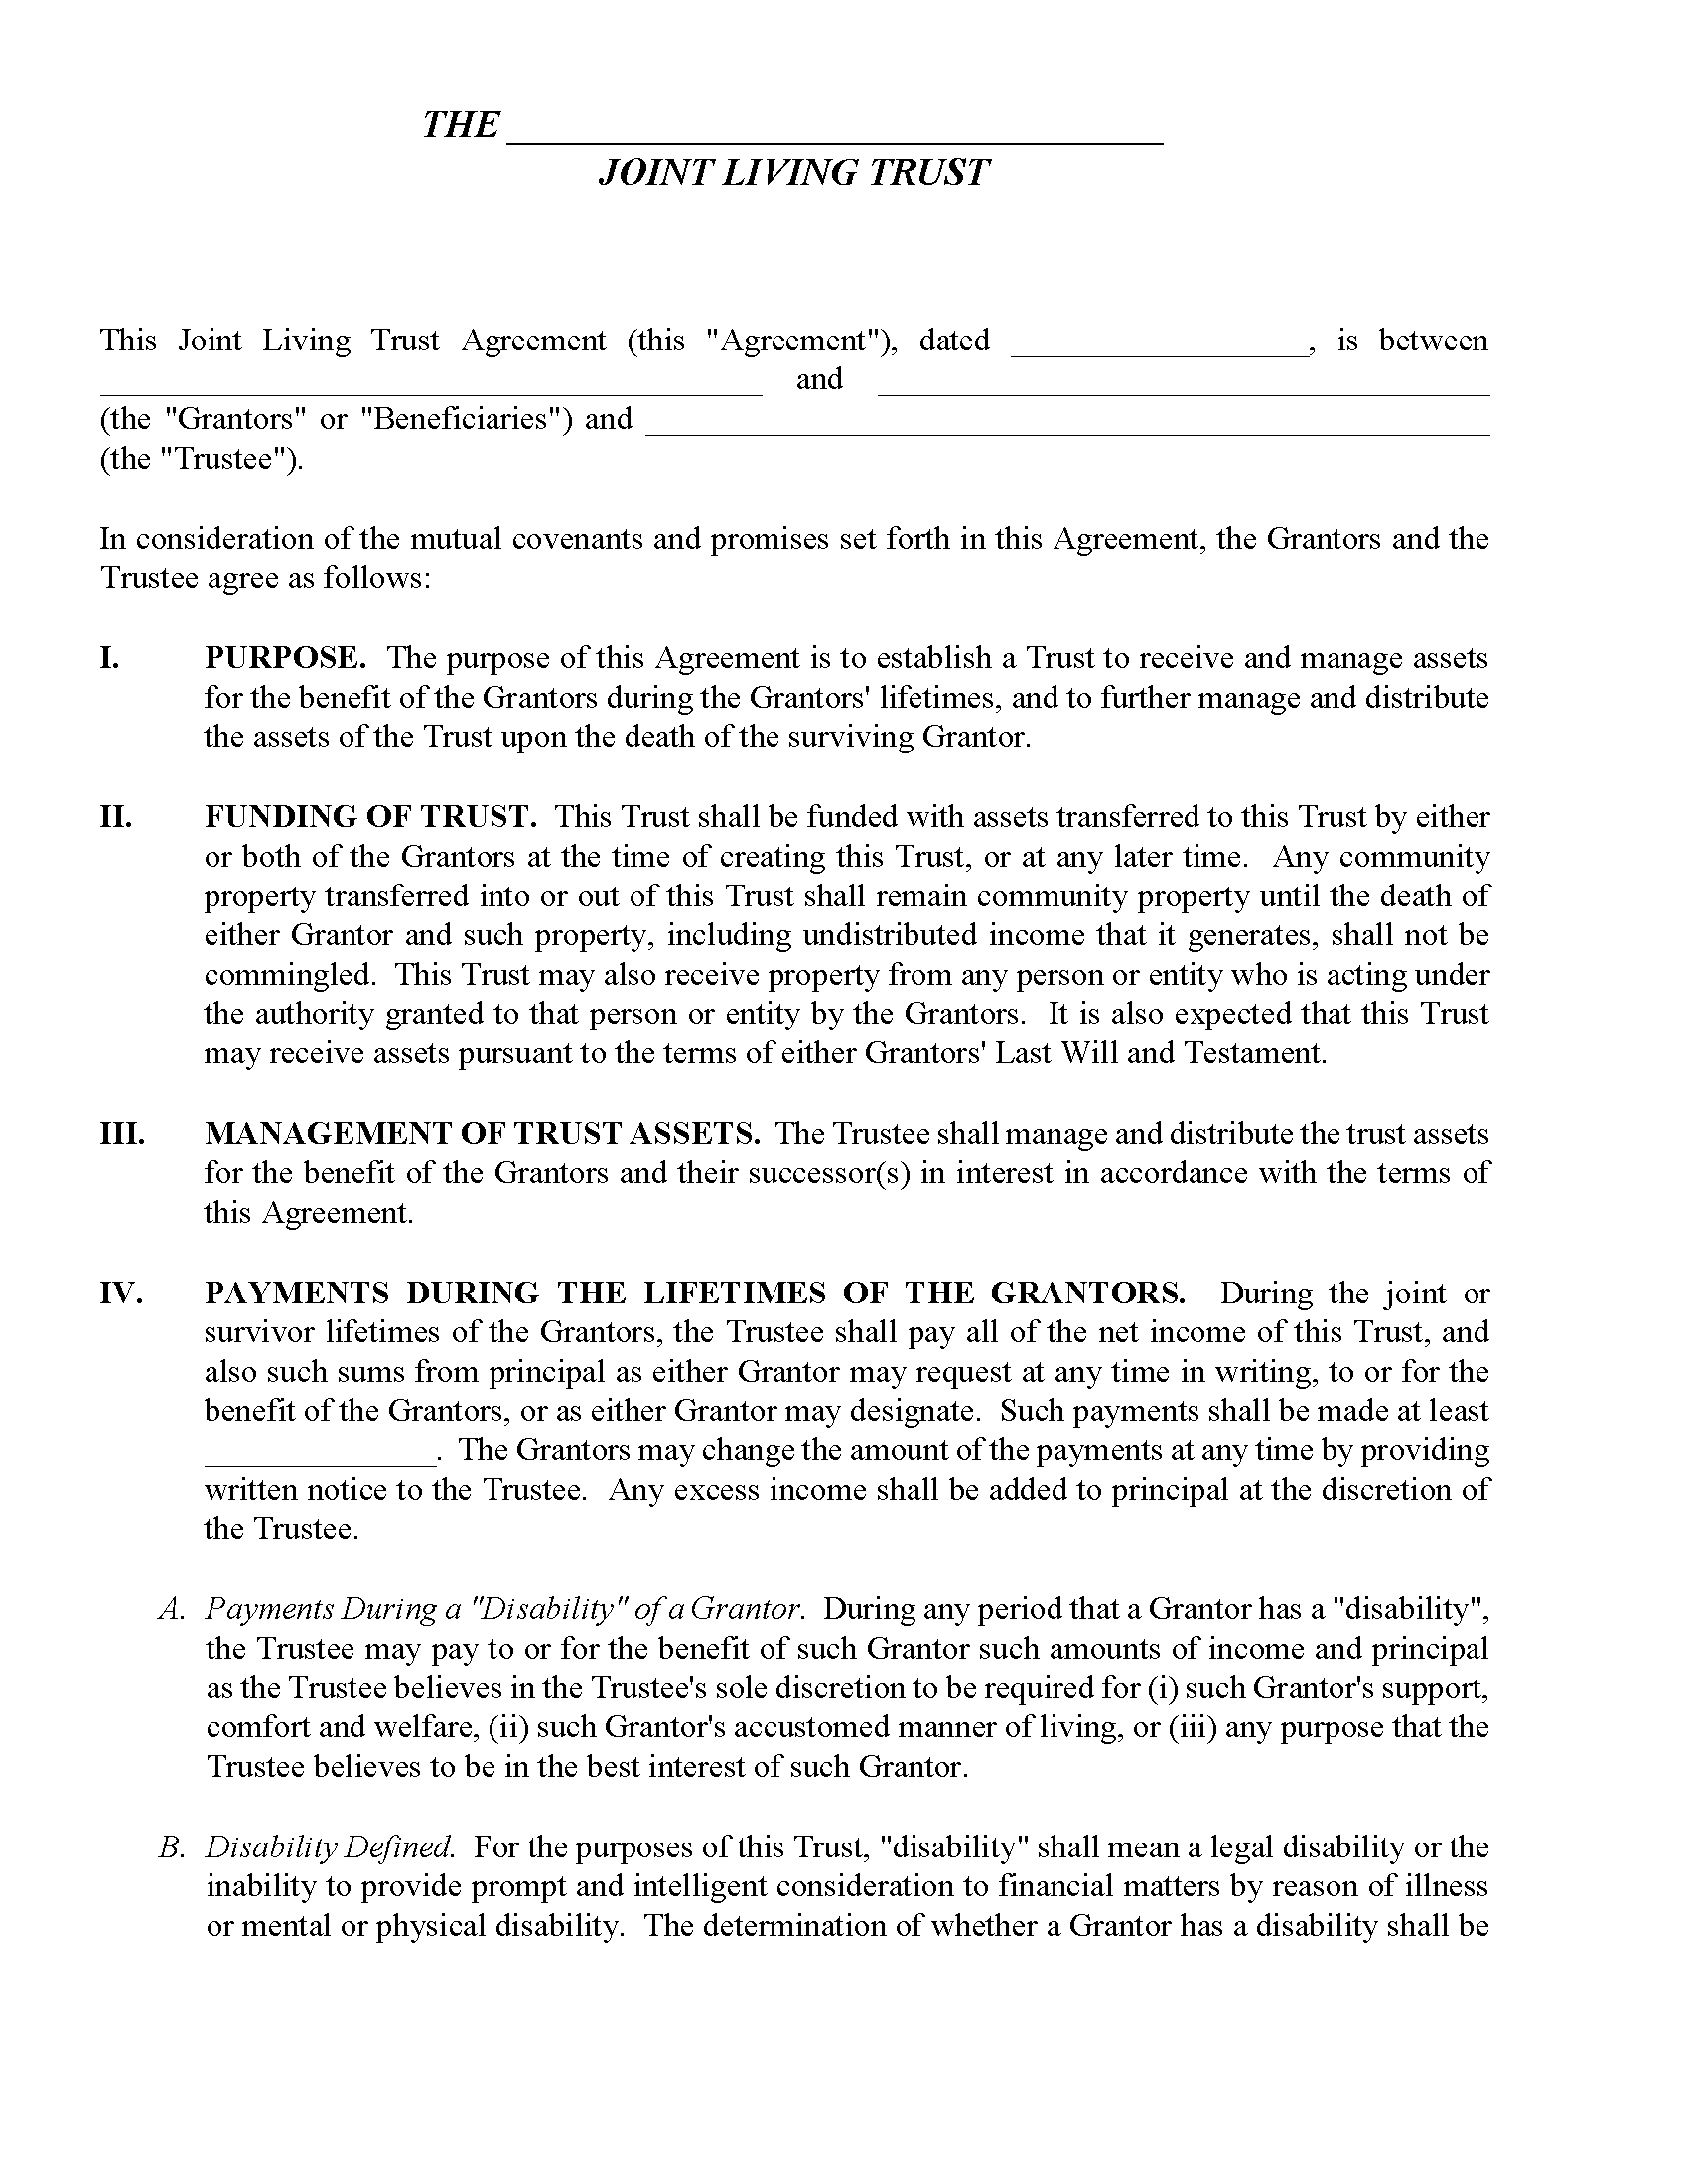 Utah Joint Living Trust Form